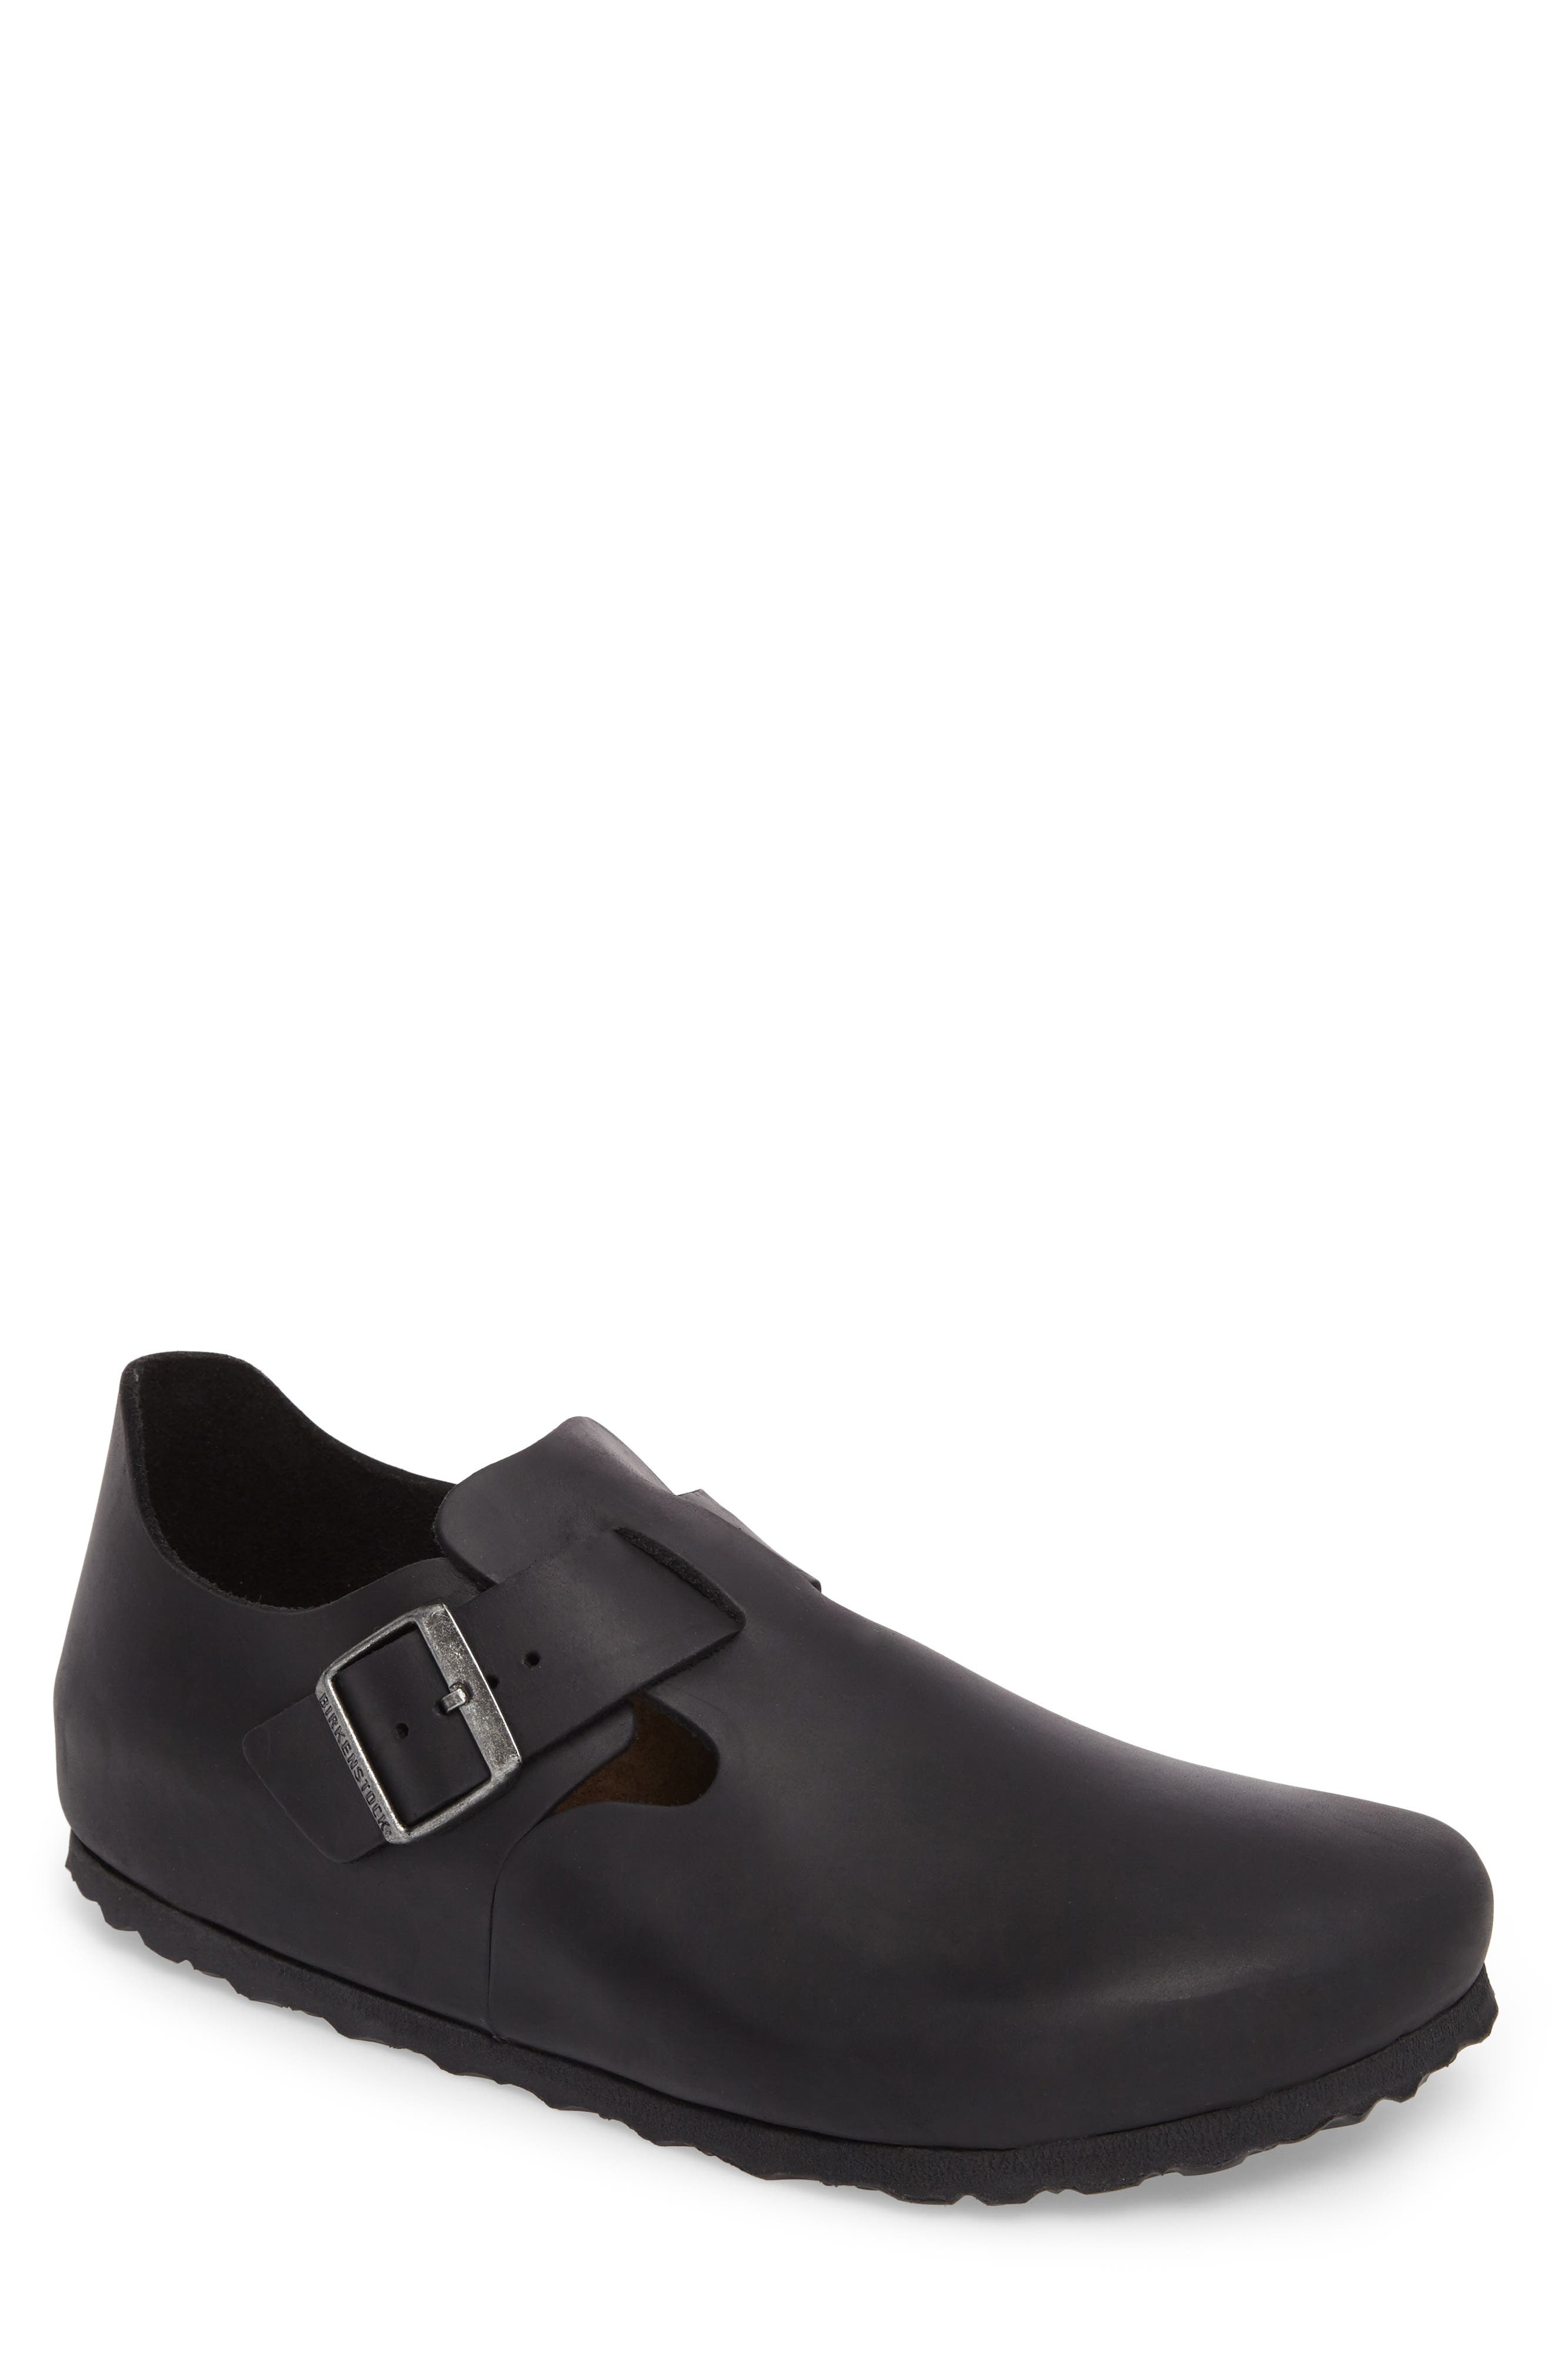 'London' Slip-On,                         Main,                         color, Black Leather